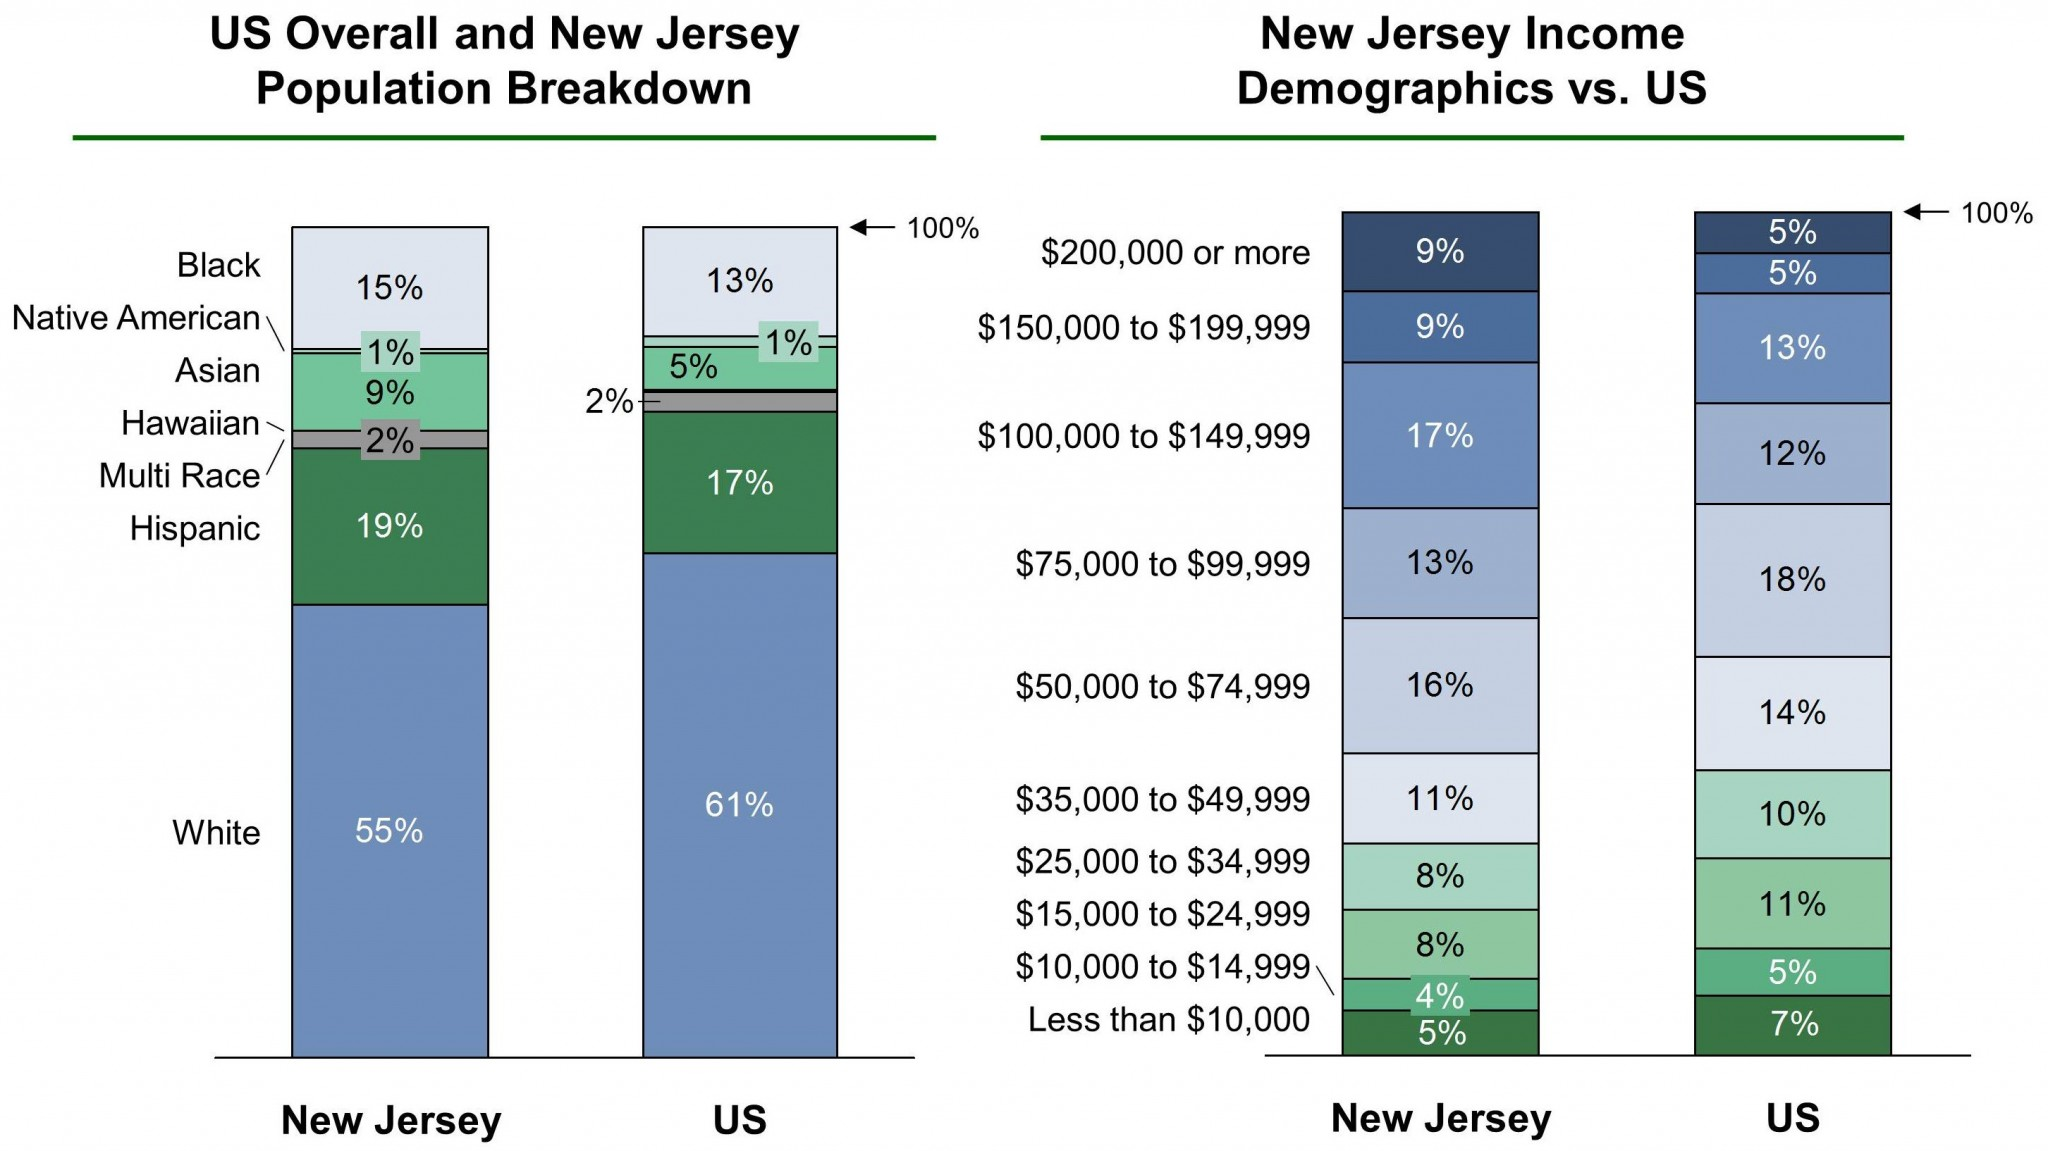 New Jersey EB-5 Regional Center Demographics VF